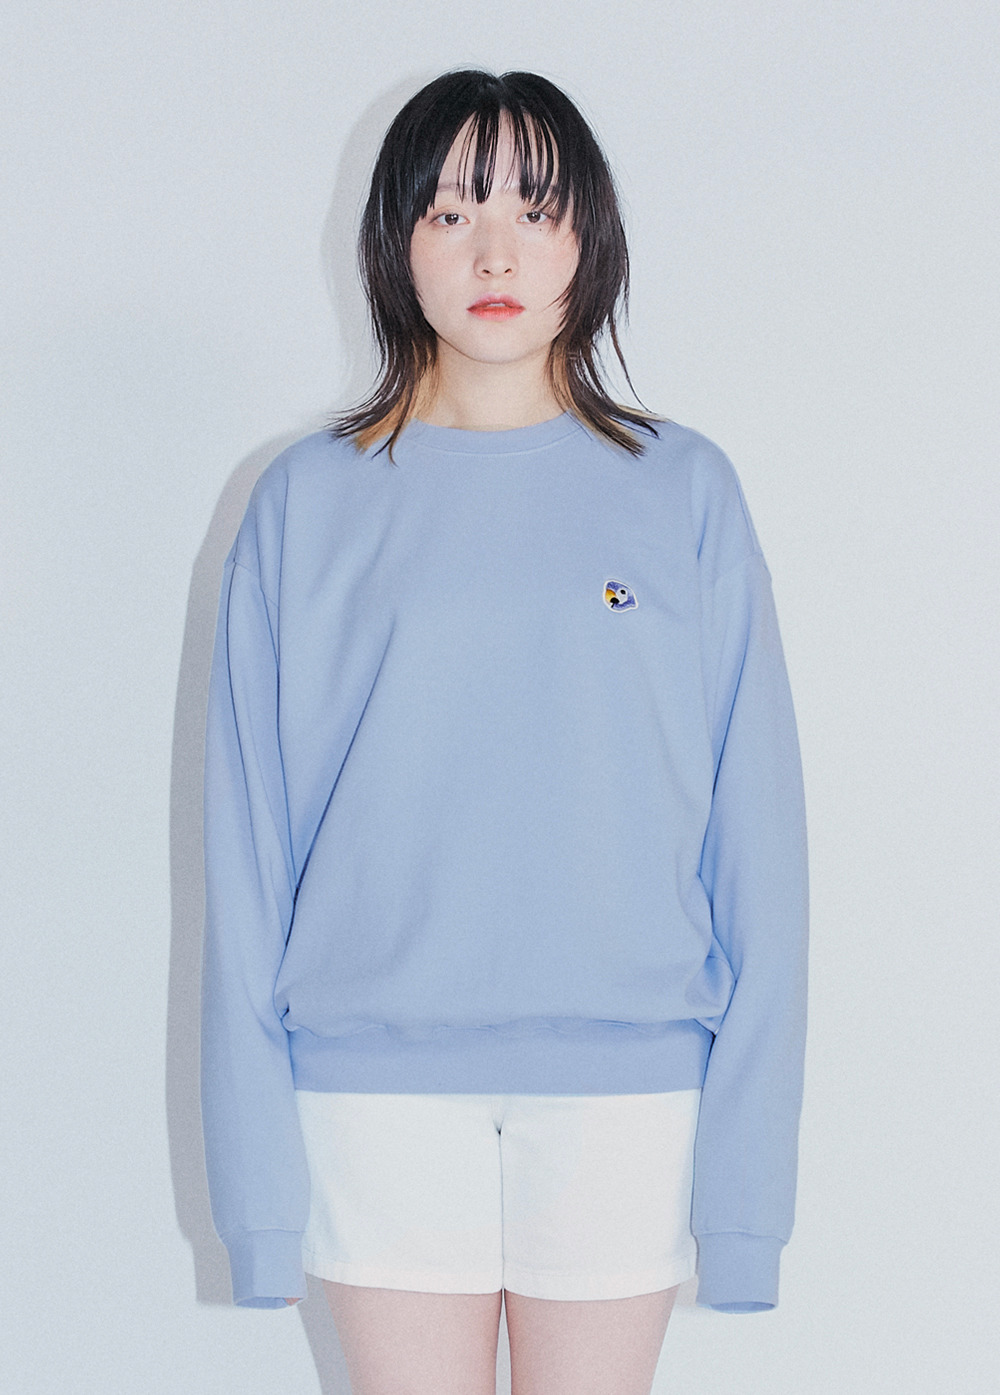 KANCO LOGO SWEATSHIRT blue